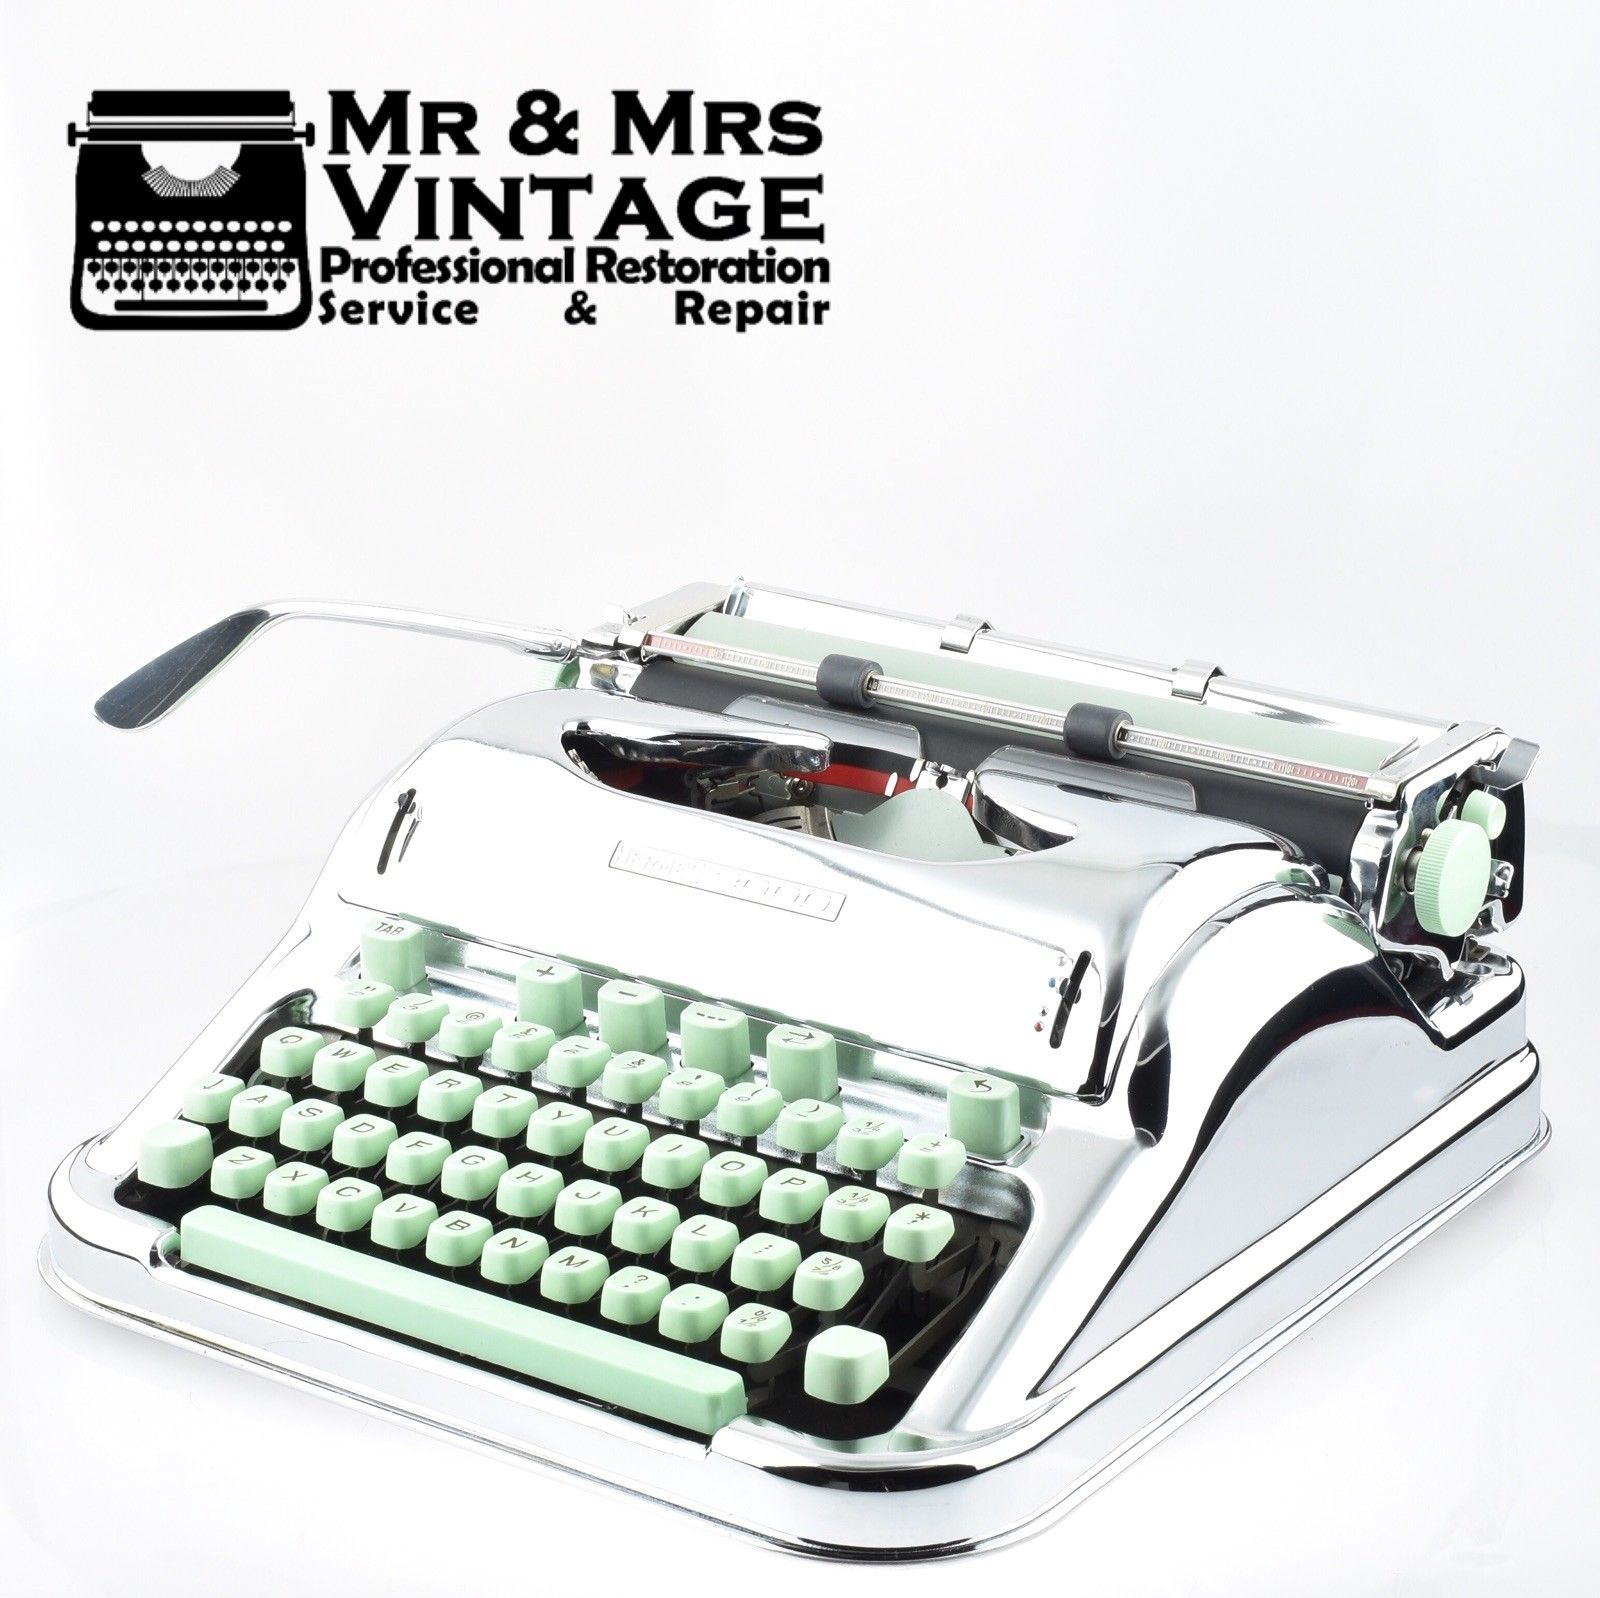 Chrome Plated Serviced Restored Working Hermes 3000 Typewriter